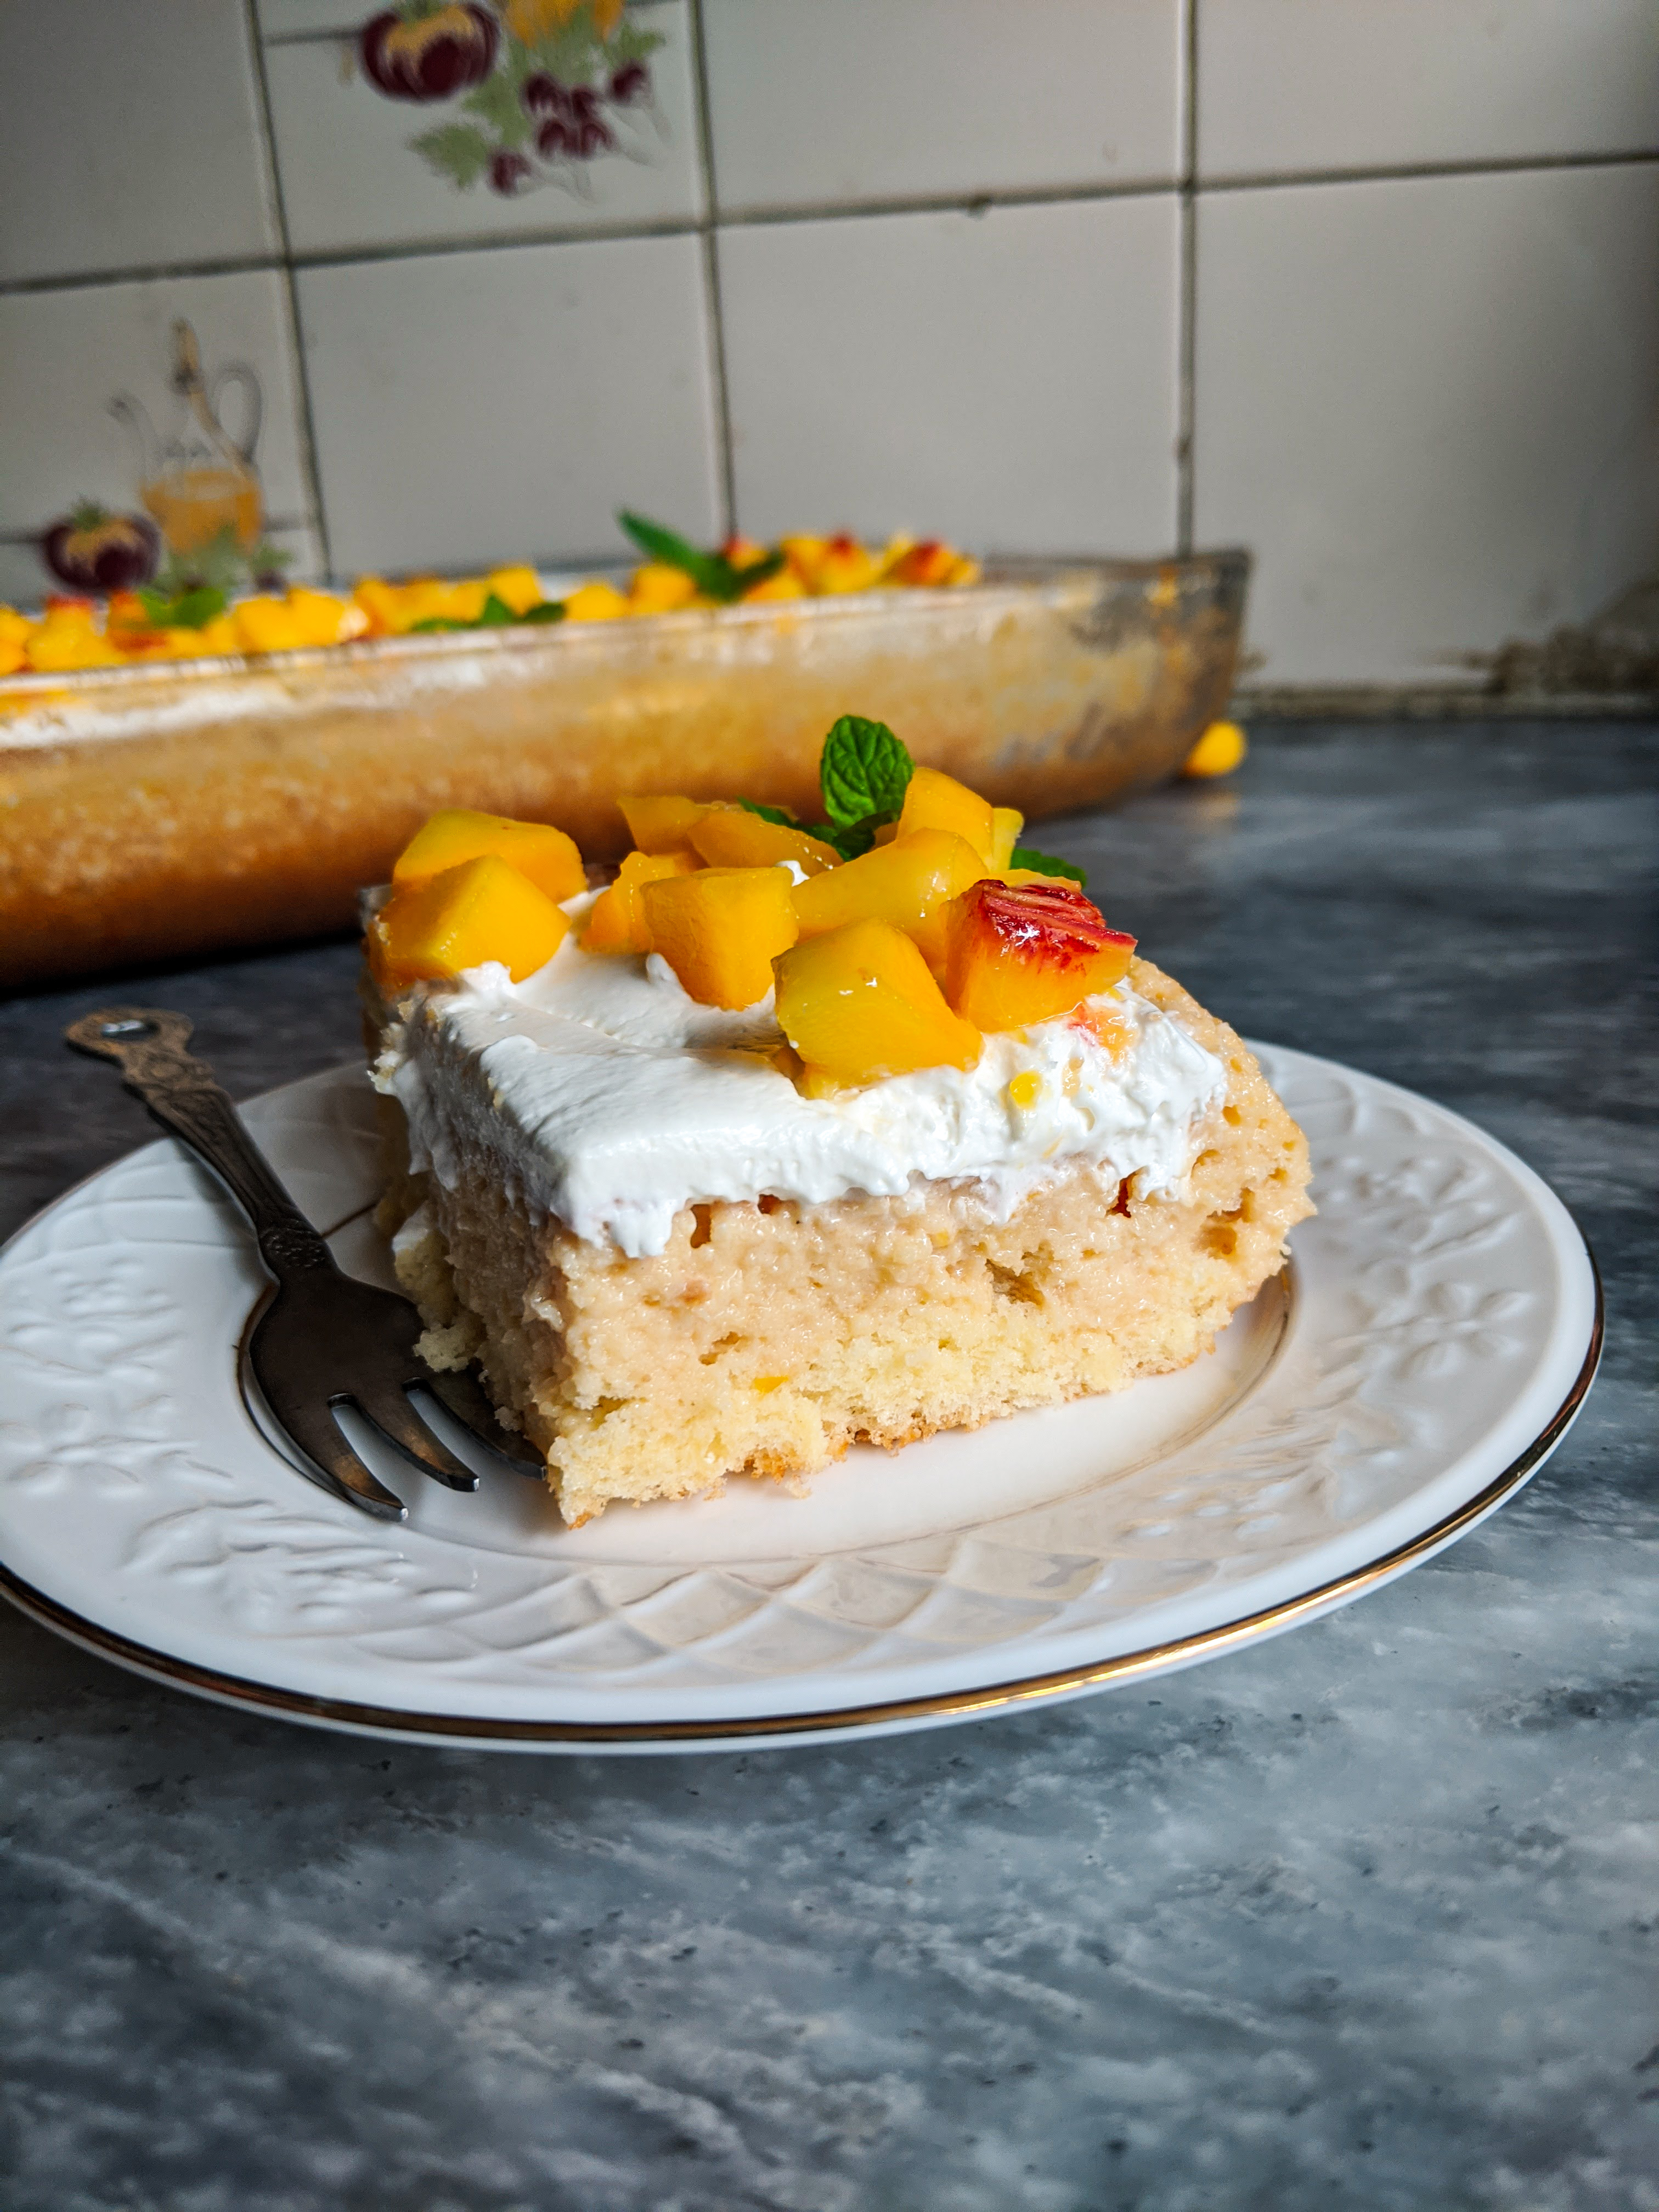 Tres leches cake. A light and fluffy cake that is soaked with three milks and chilled until it is perfectly moist.